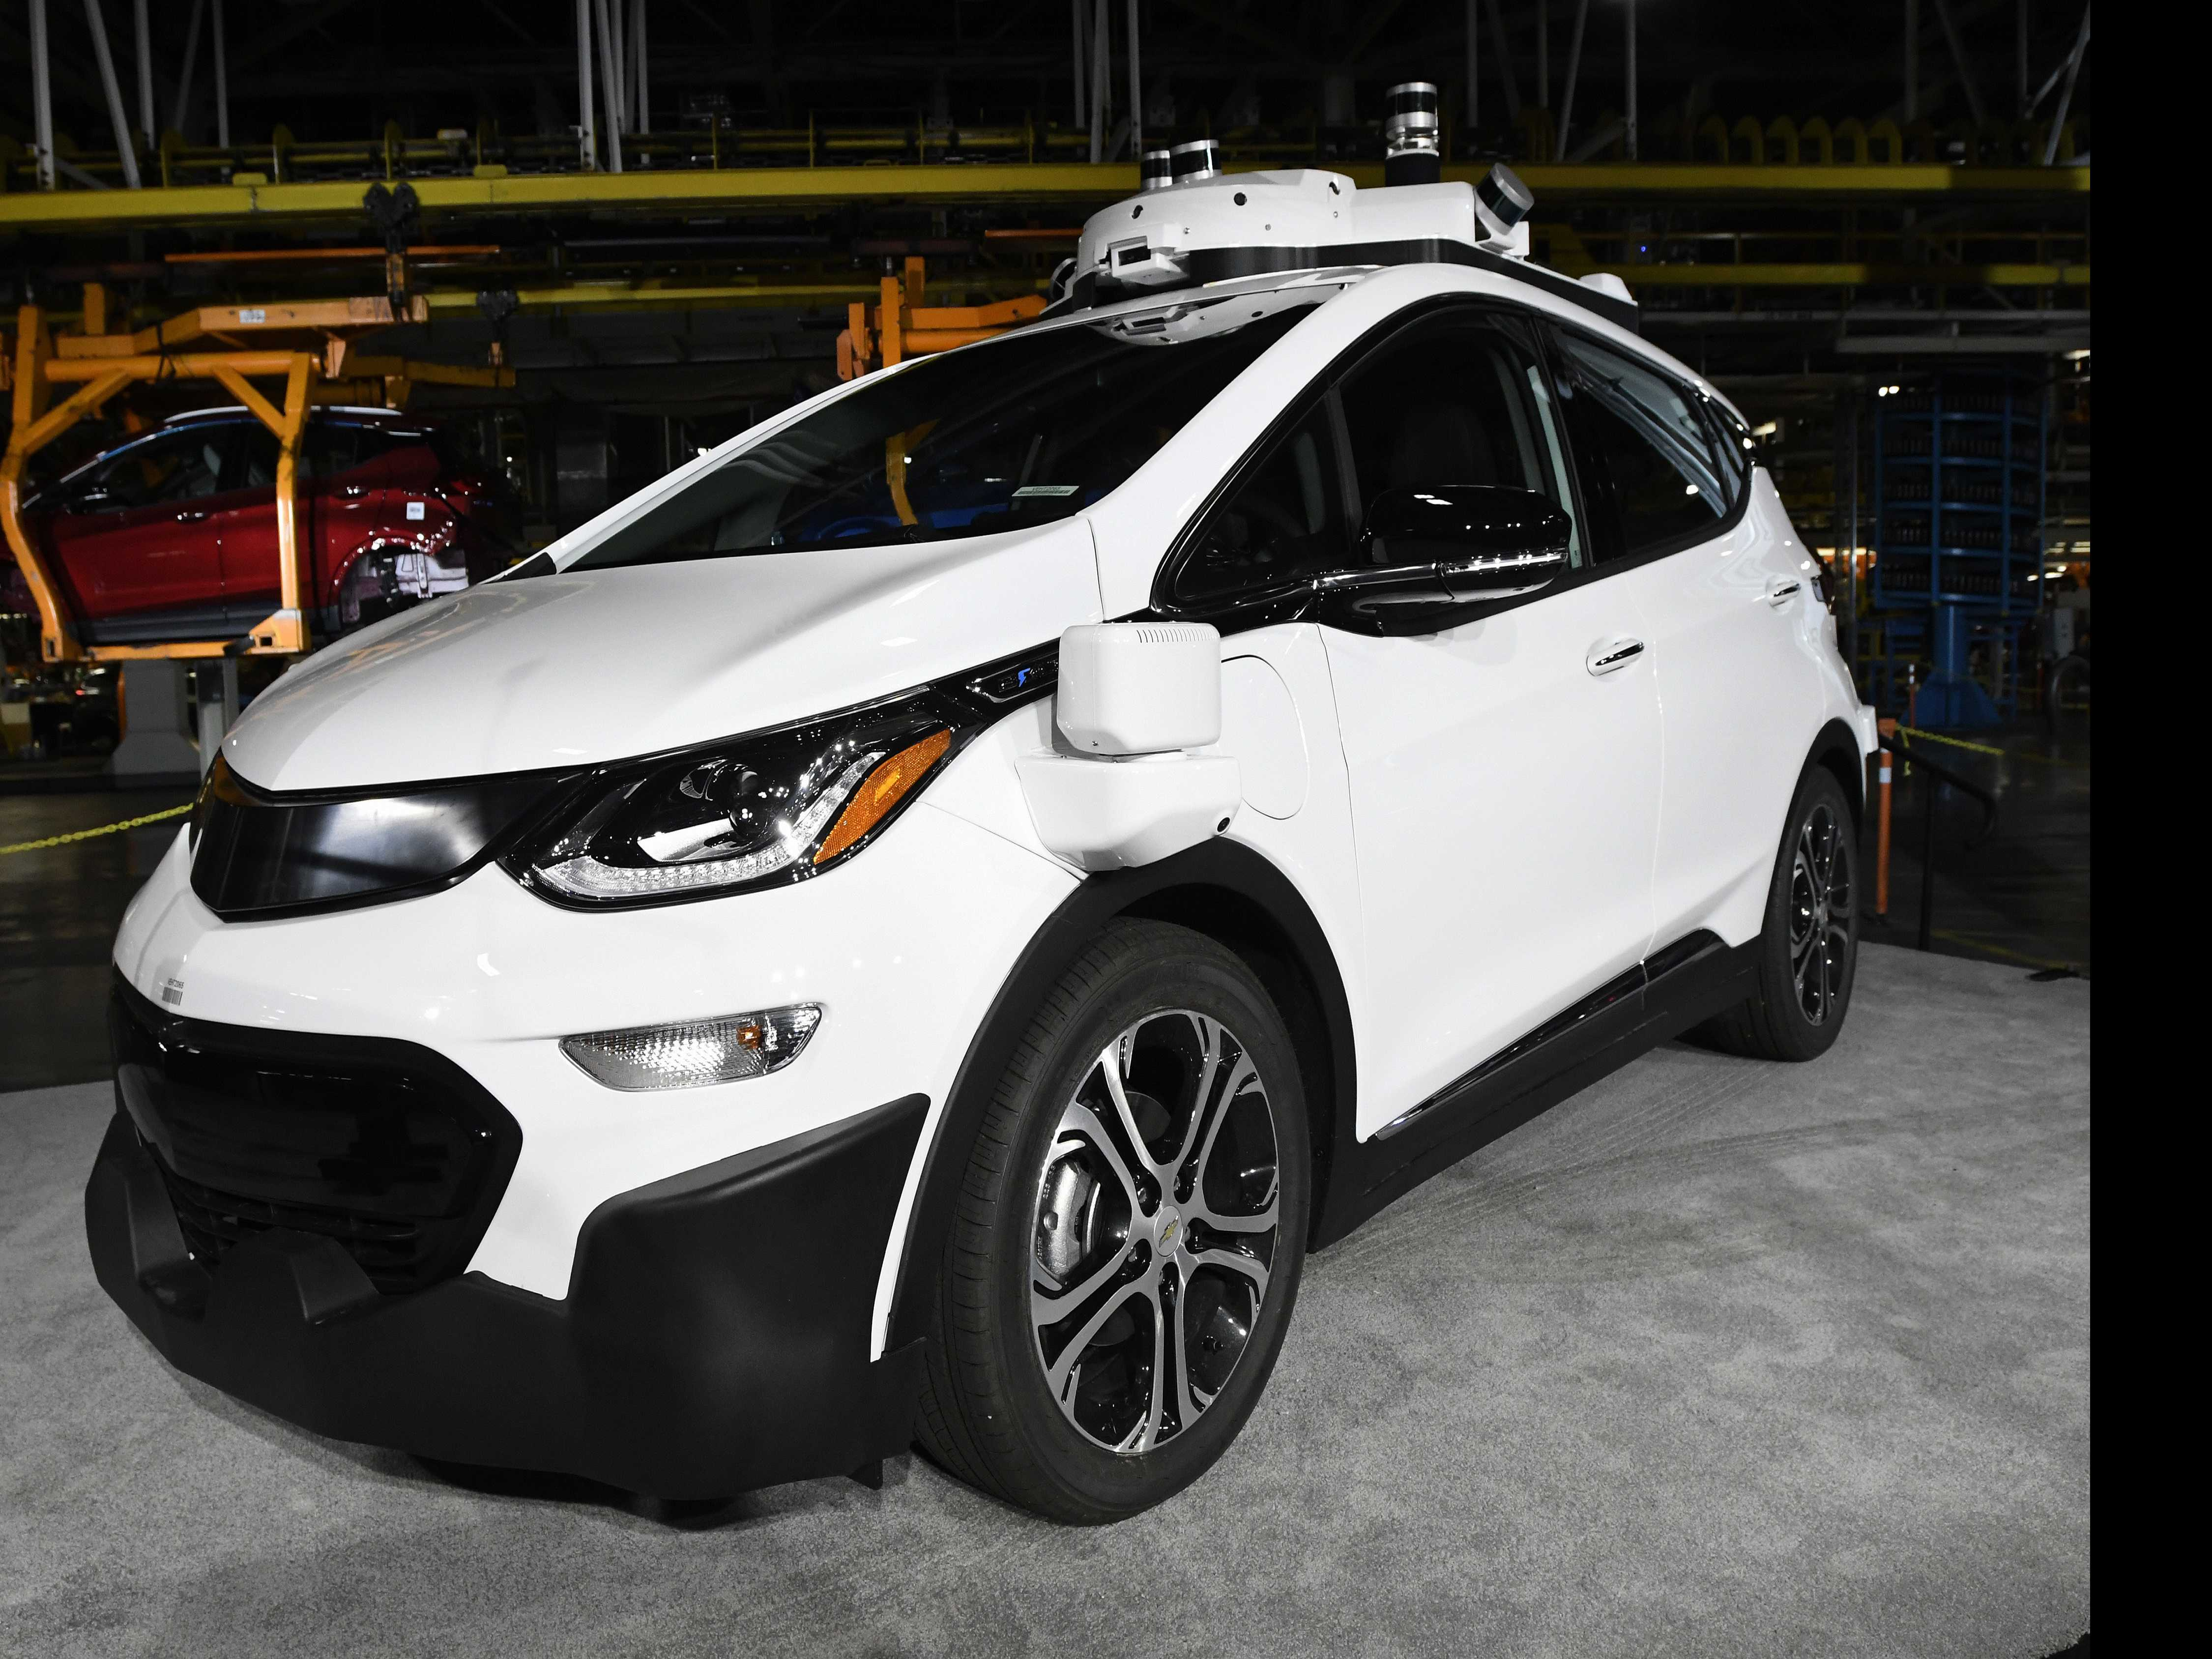 GM to Launch Self-Driving Vehicles in Big U.S. Cities in 2019